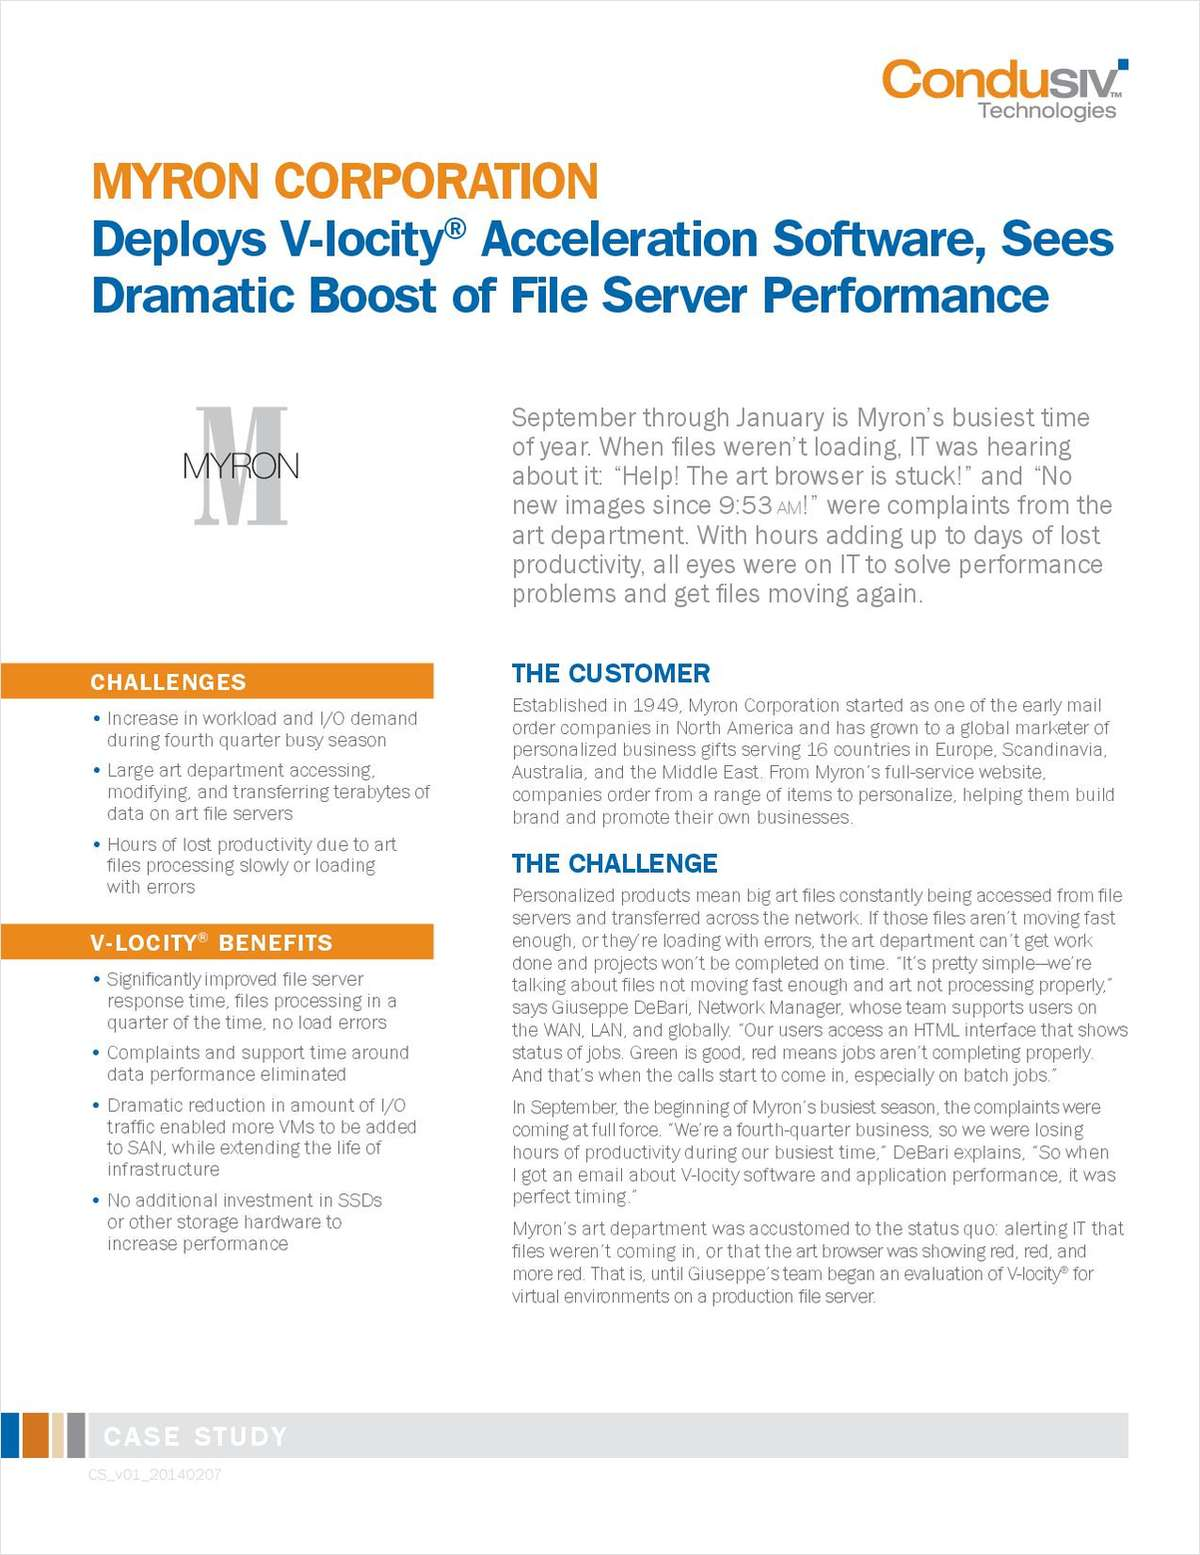 MYRON CORPORATION Deploys V-locity® I/O Reduction Software, Sees Dramatic Boost of File Server Performance